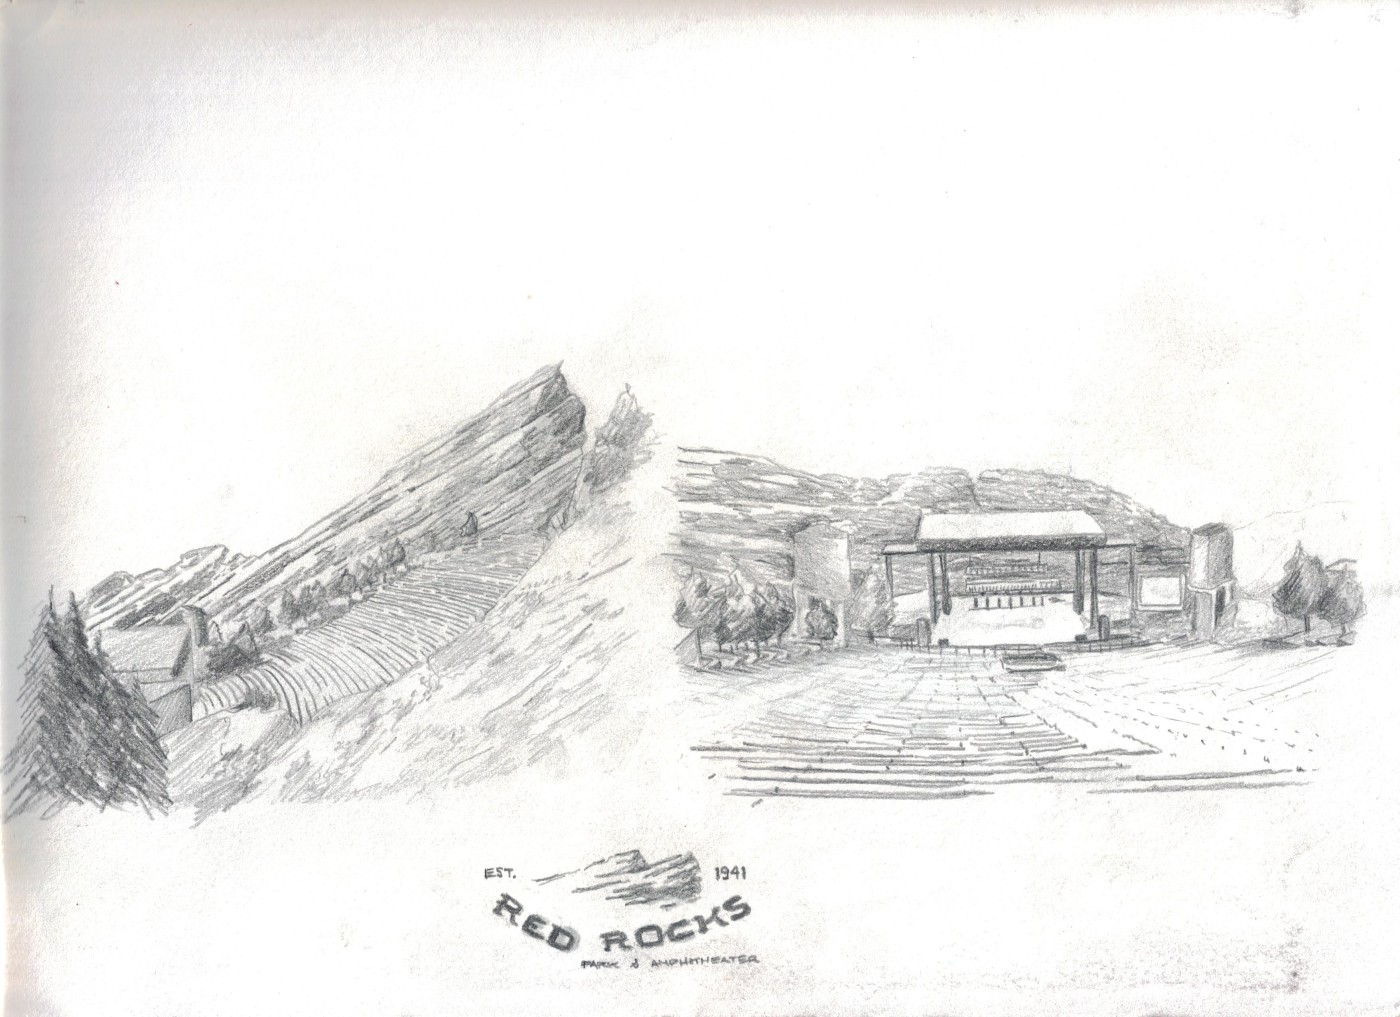 sketches_red rocks ampitheater